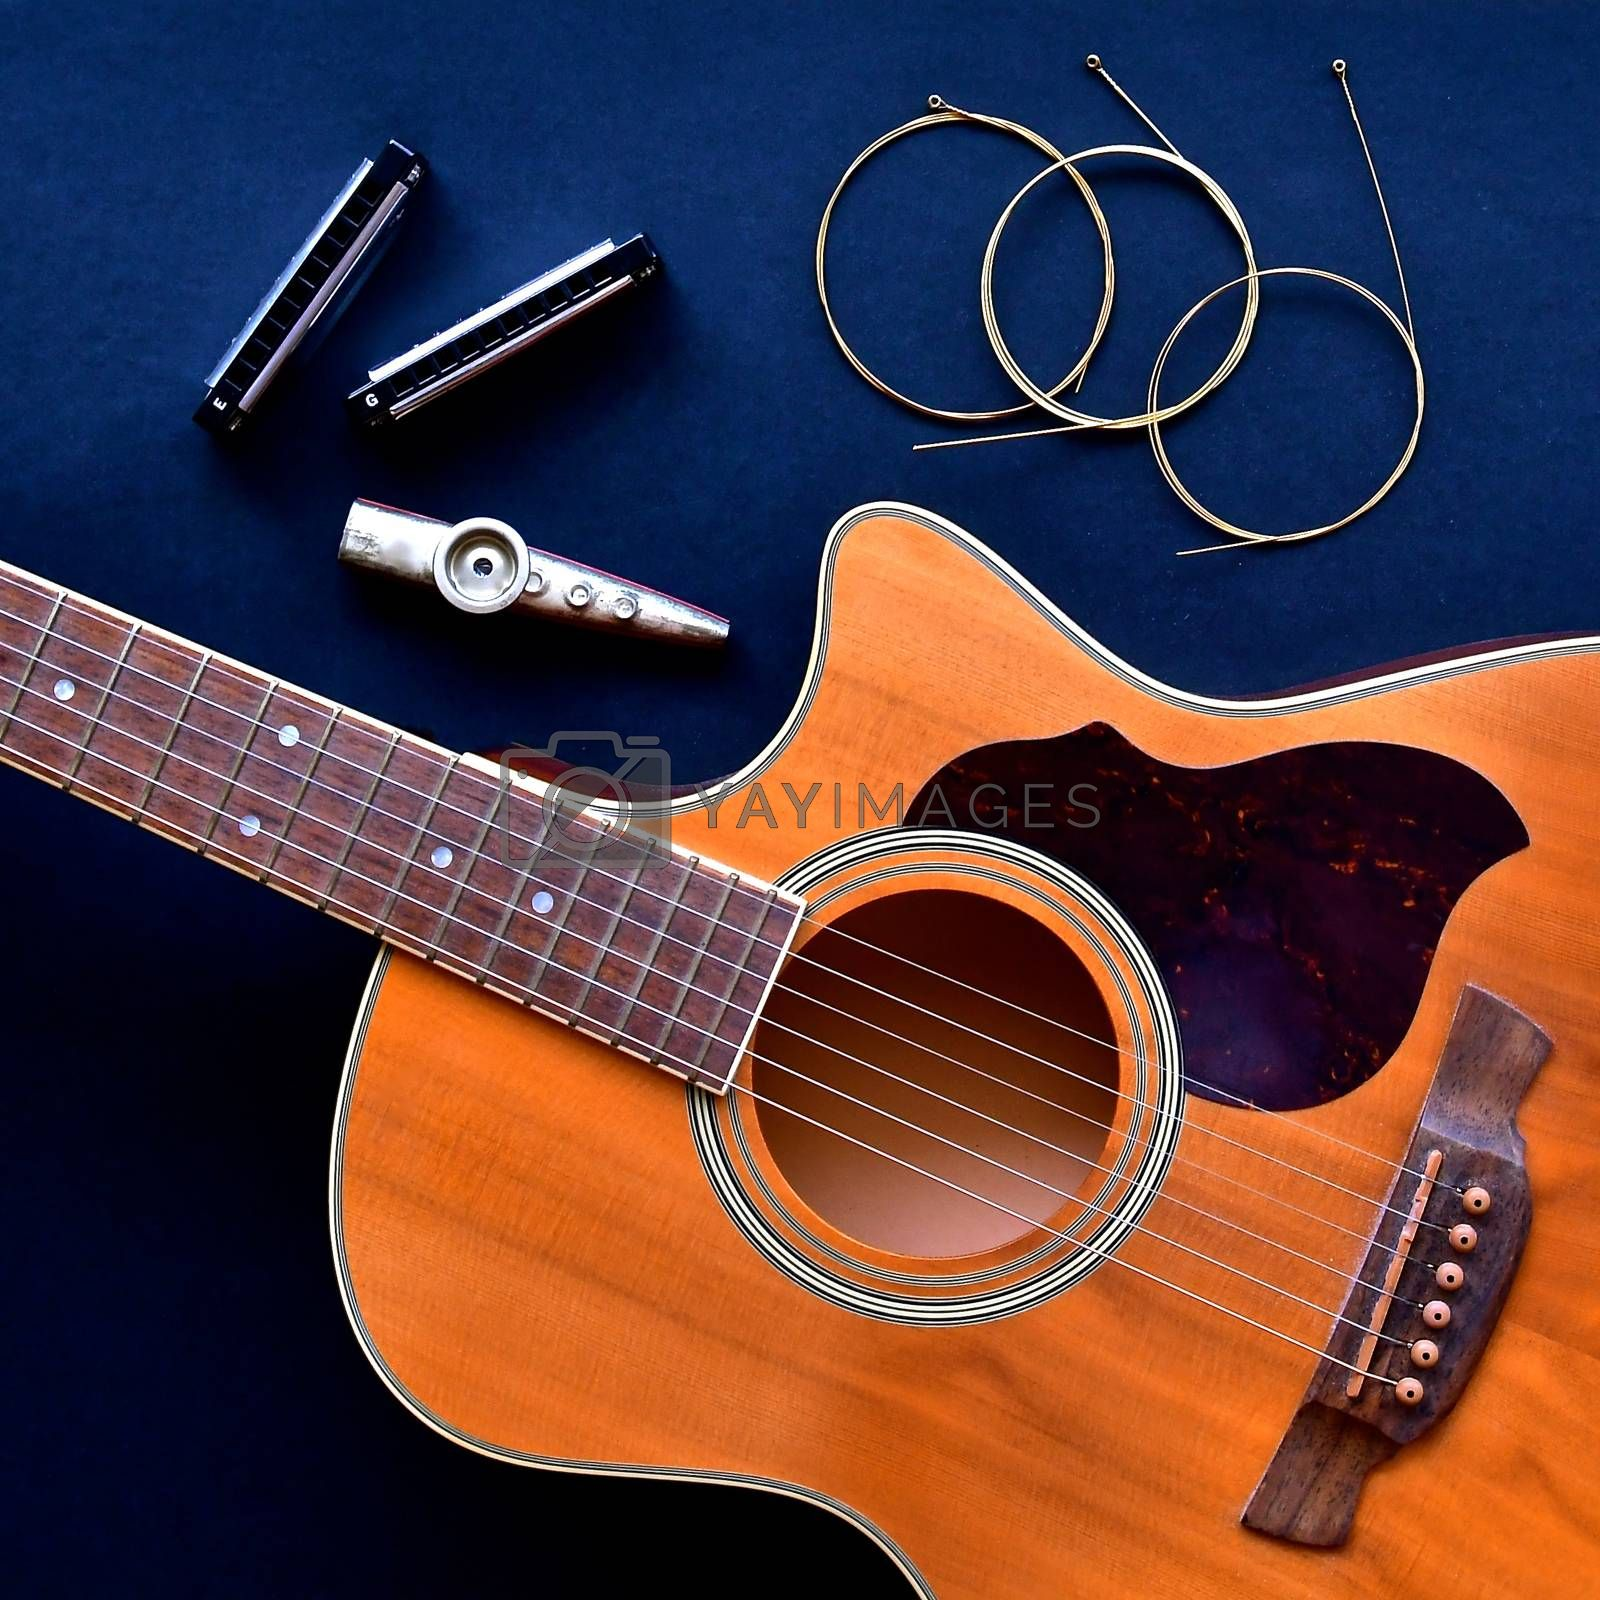 Flatlay view of an acoustic guitar on a black background.